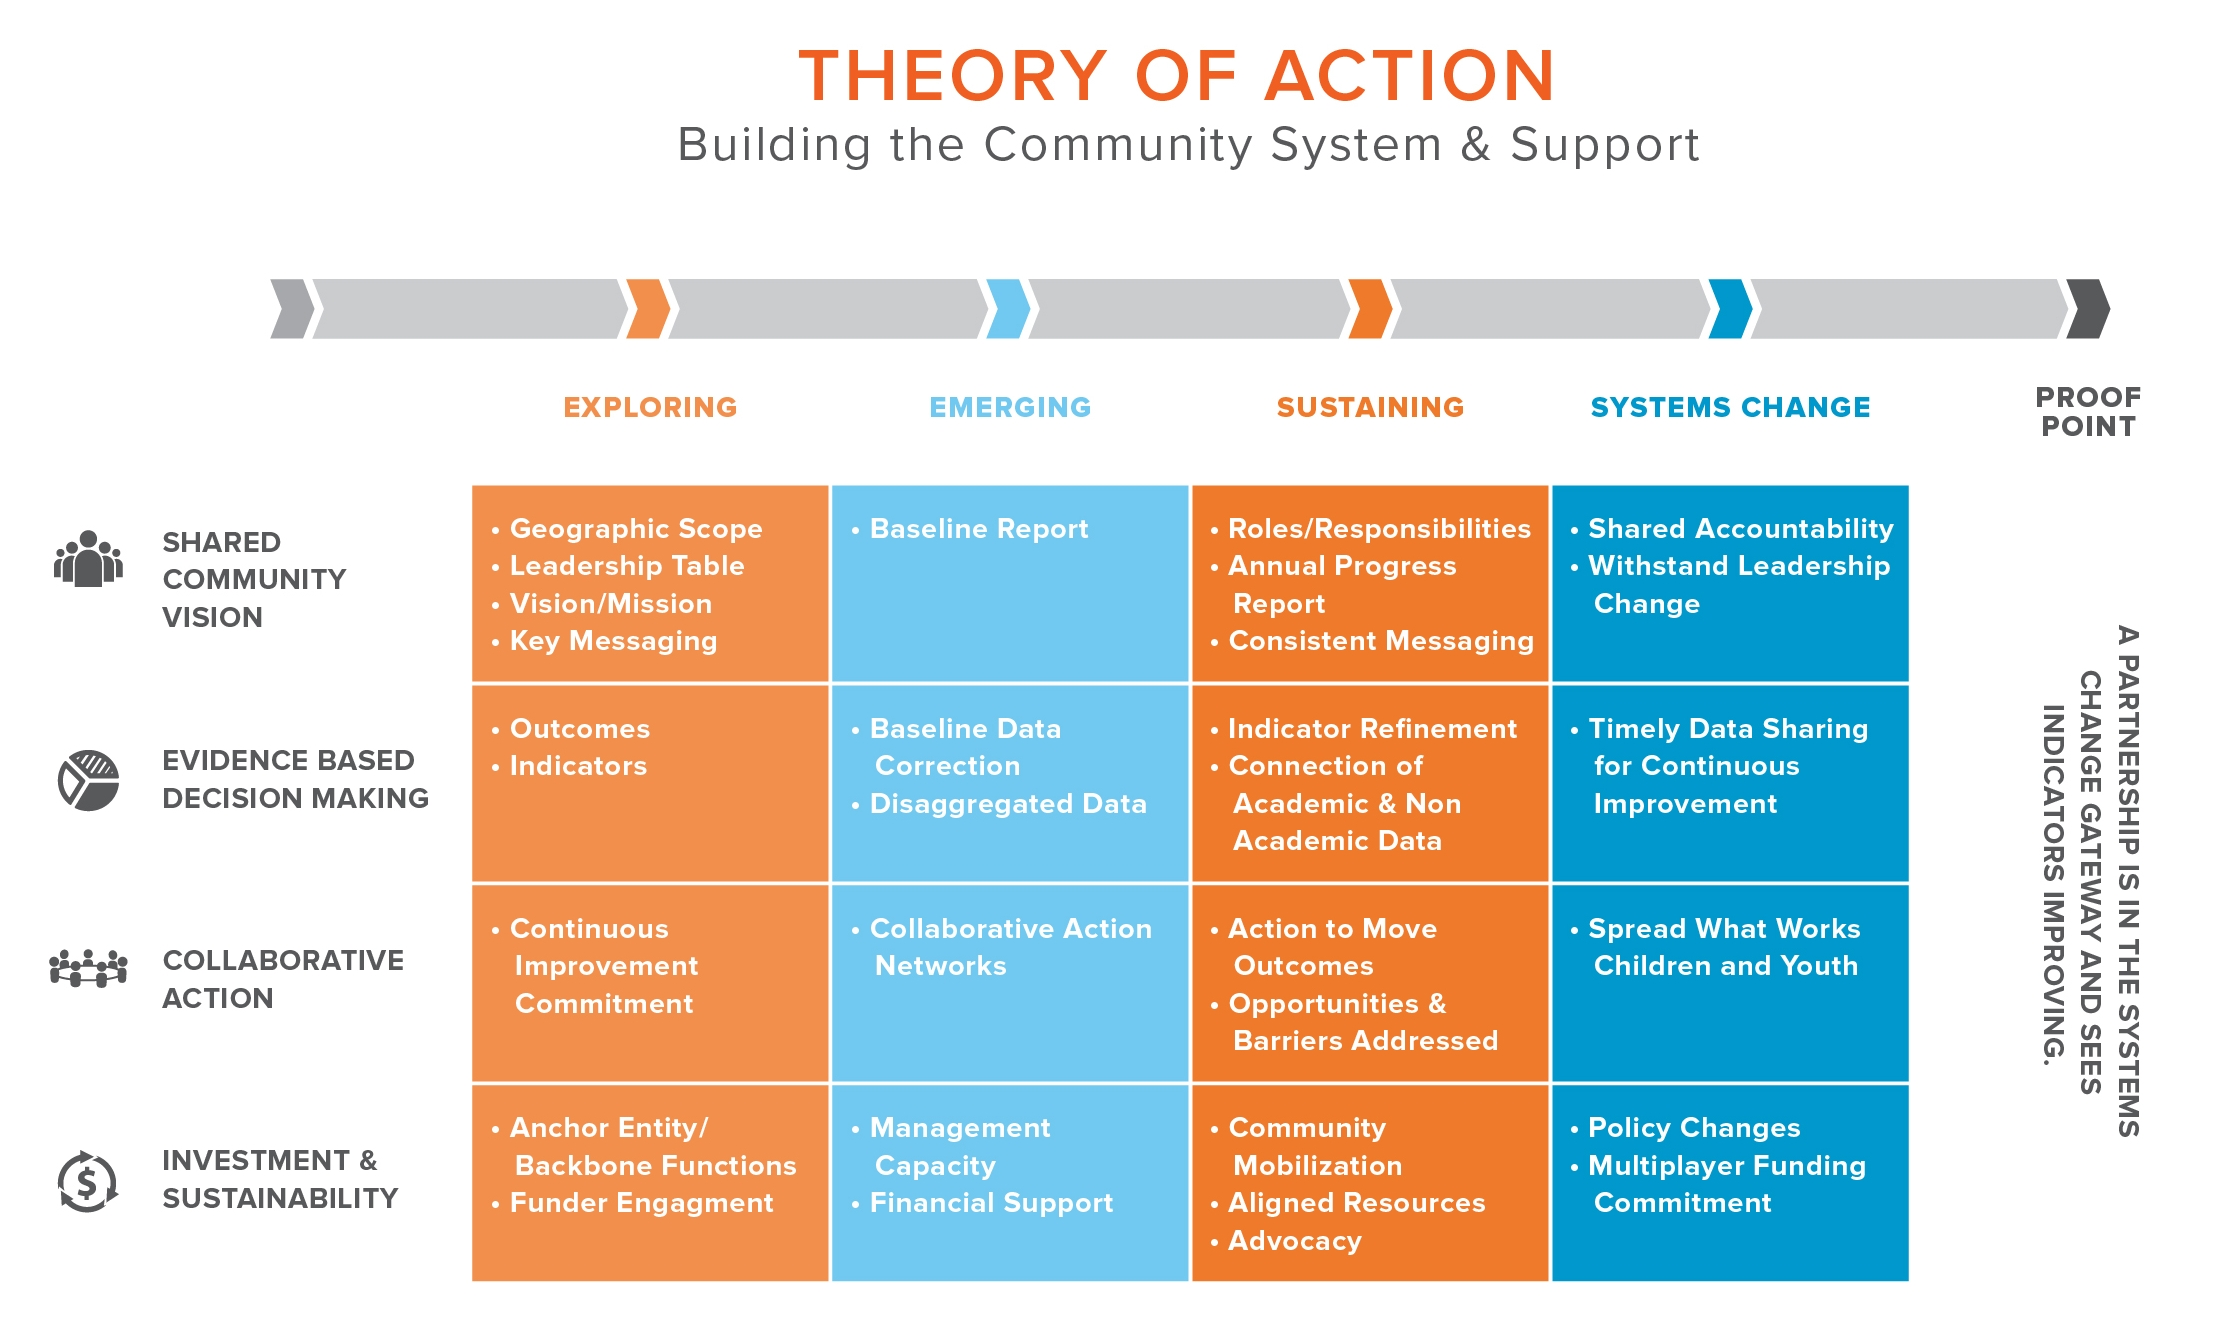 Click  HERE  to see StriveTogether's full Theory of Action